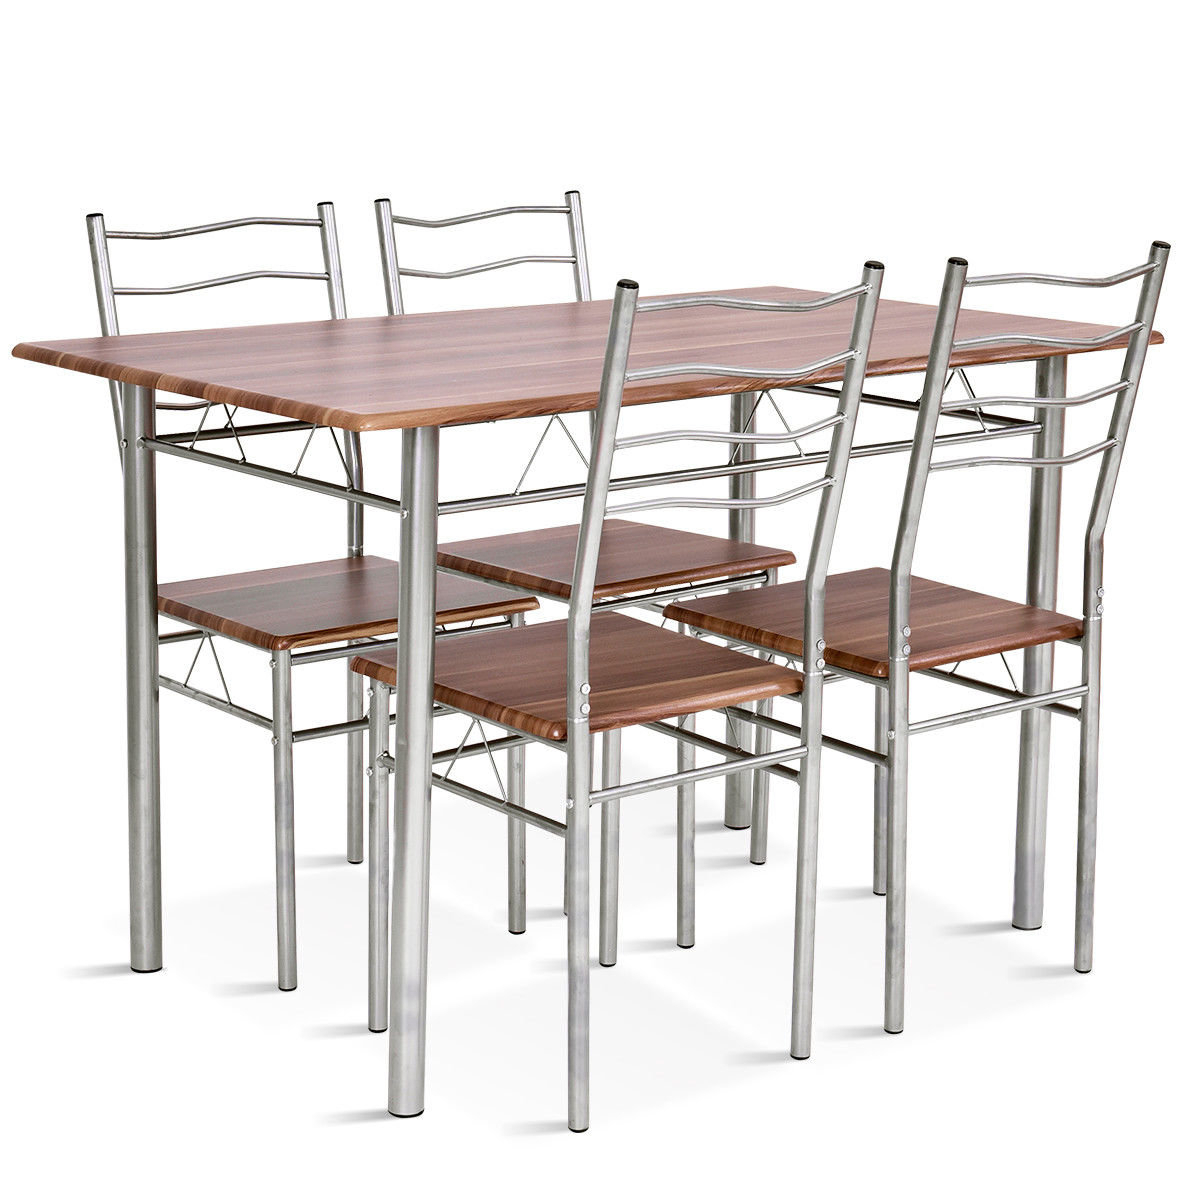 Conover 5 Piece Dining Sets Throughout Well Known Winston Porter Casiano 5 Piece Dining Set & Reviews (View 8 of 25)